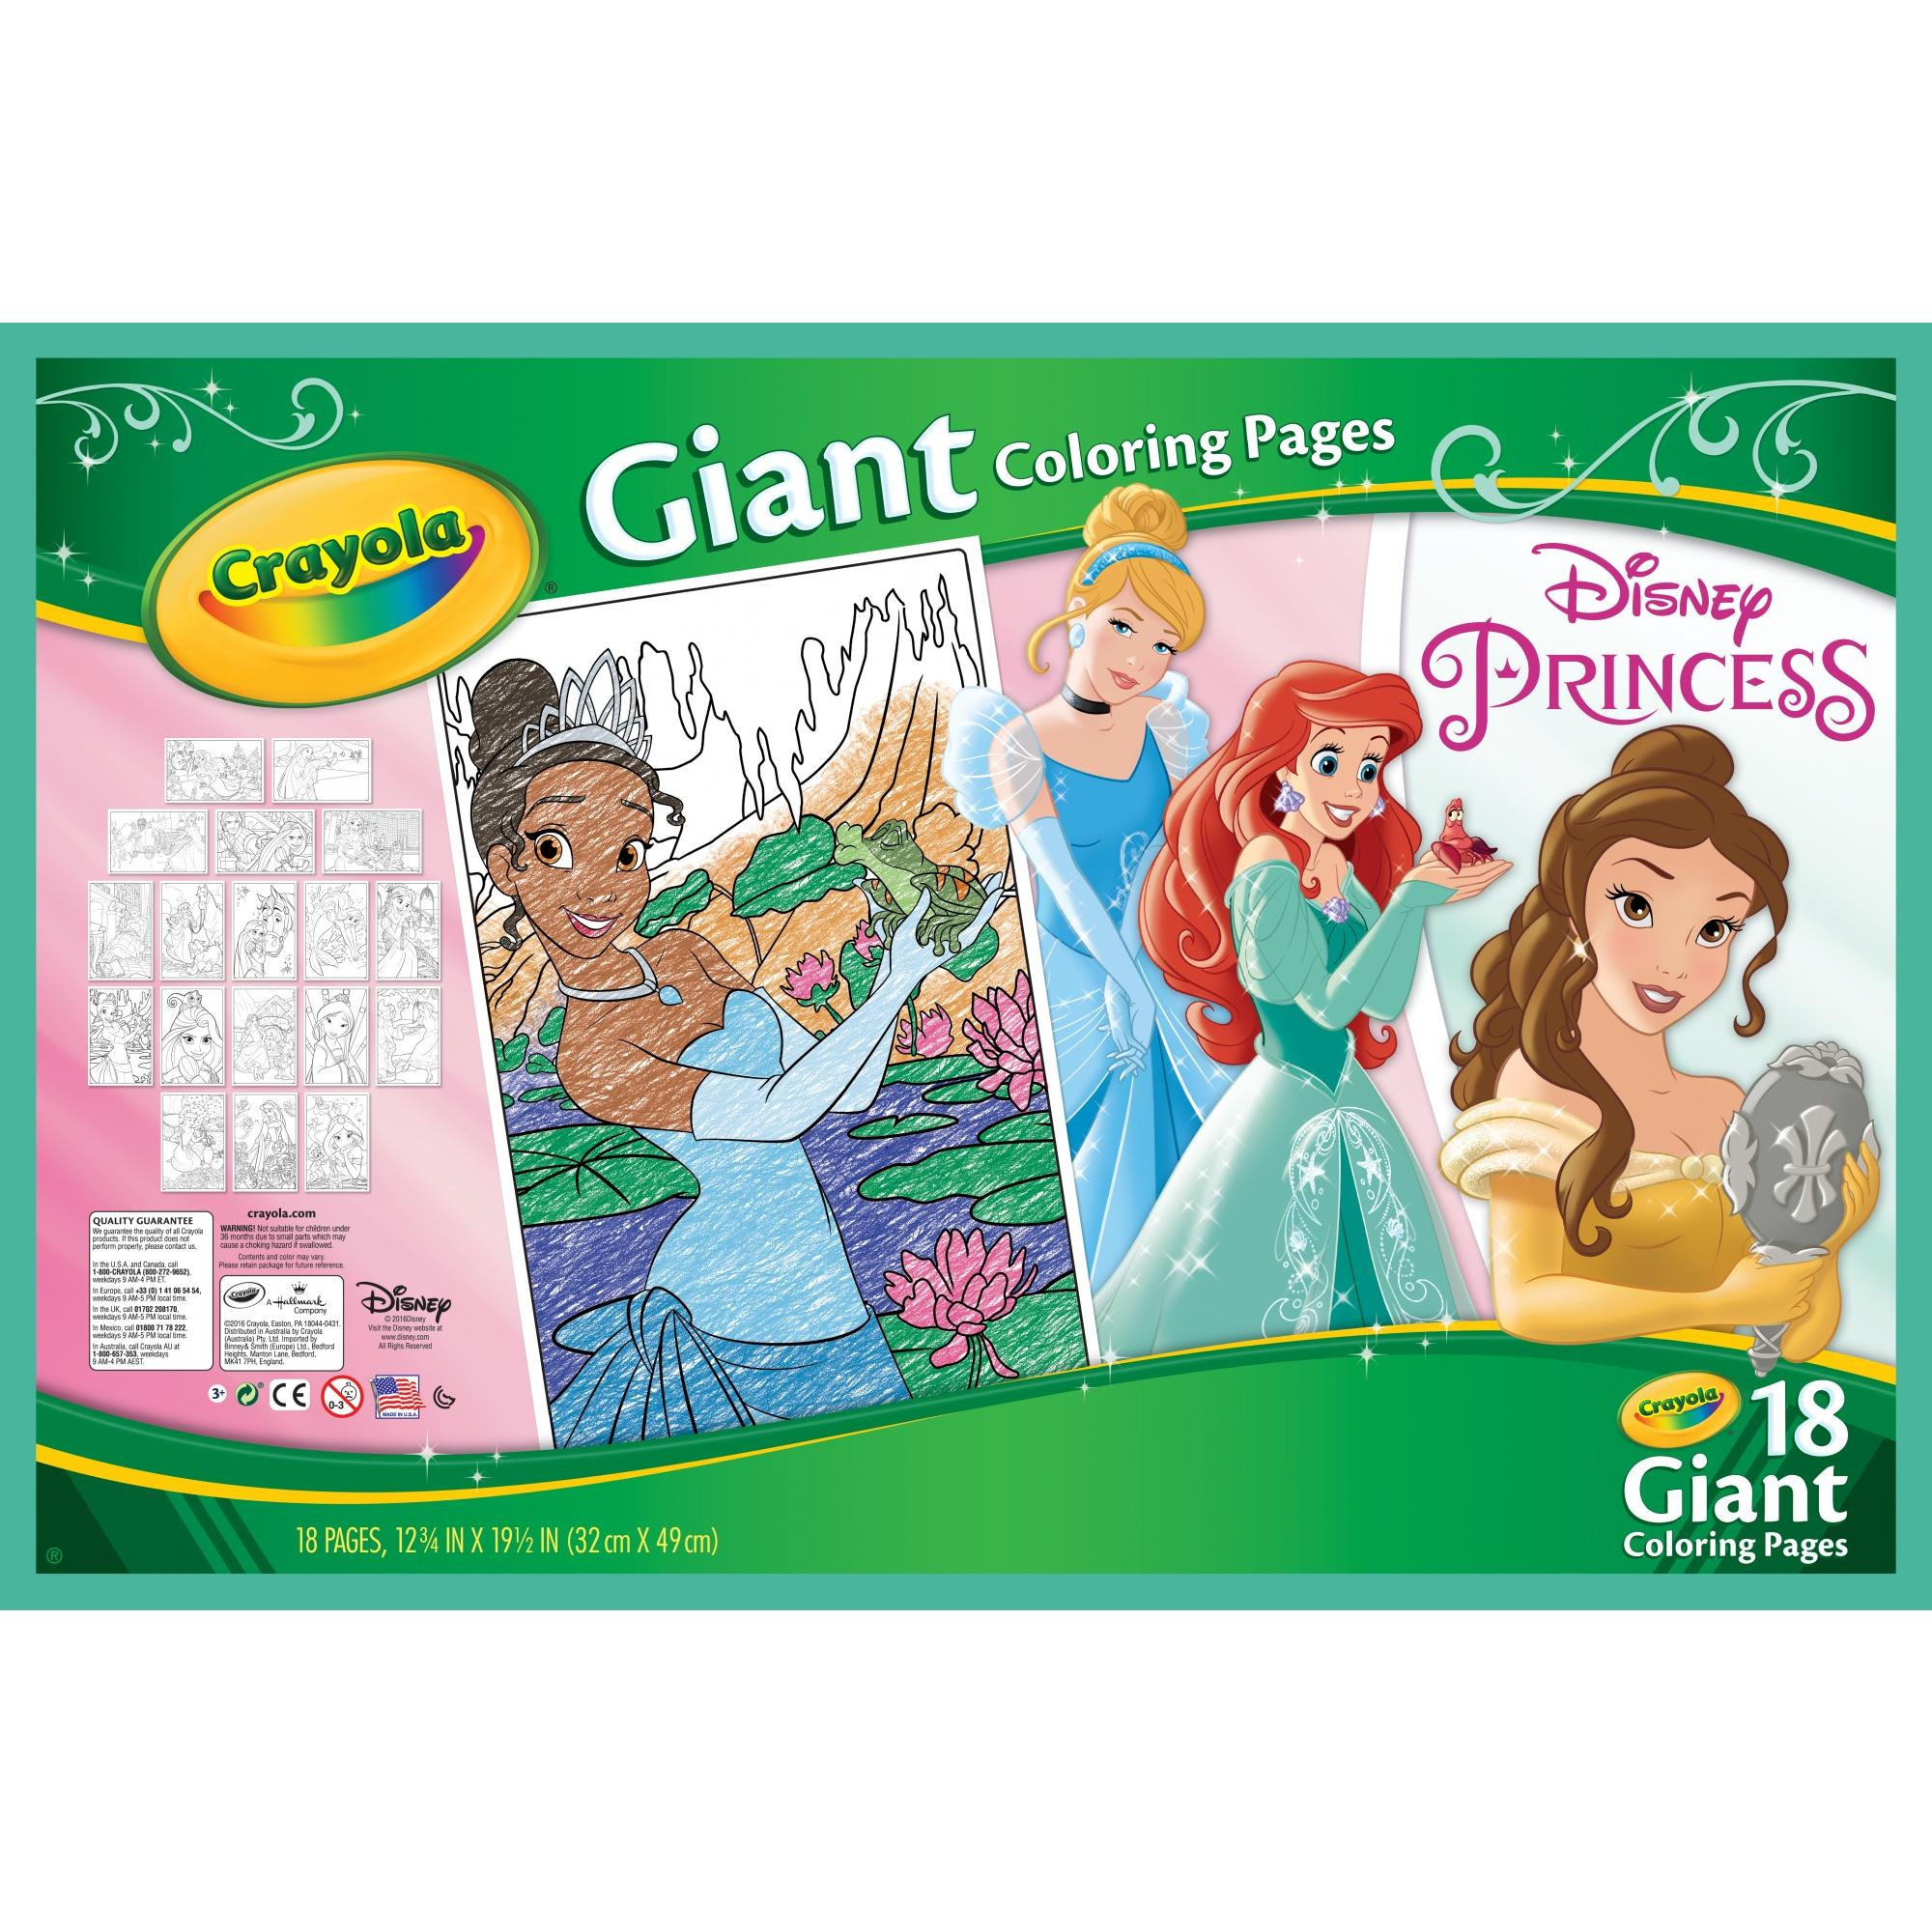 Crayola Disney Princess Coloring Pages, Giant Coloring Pages, 18 Count